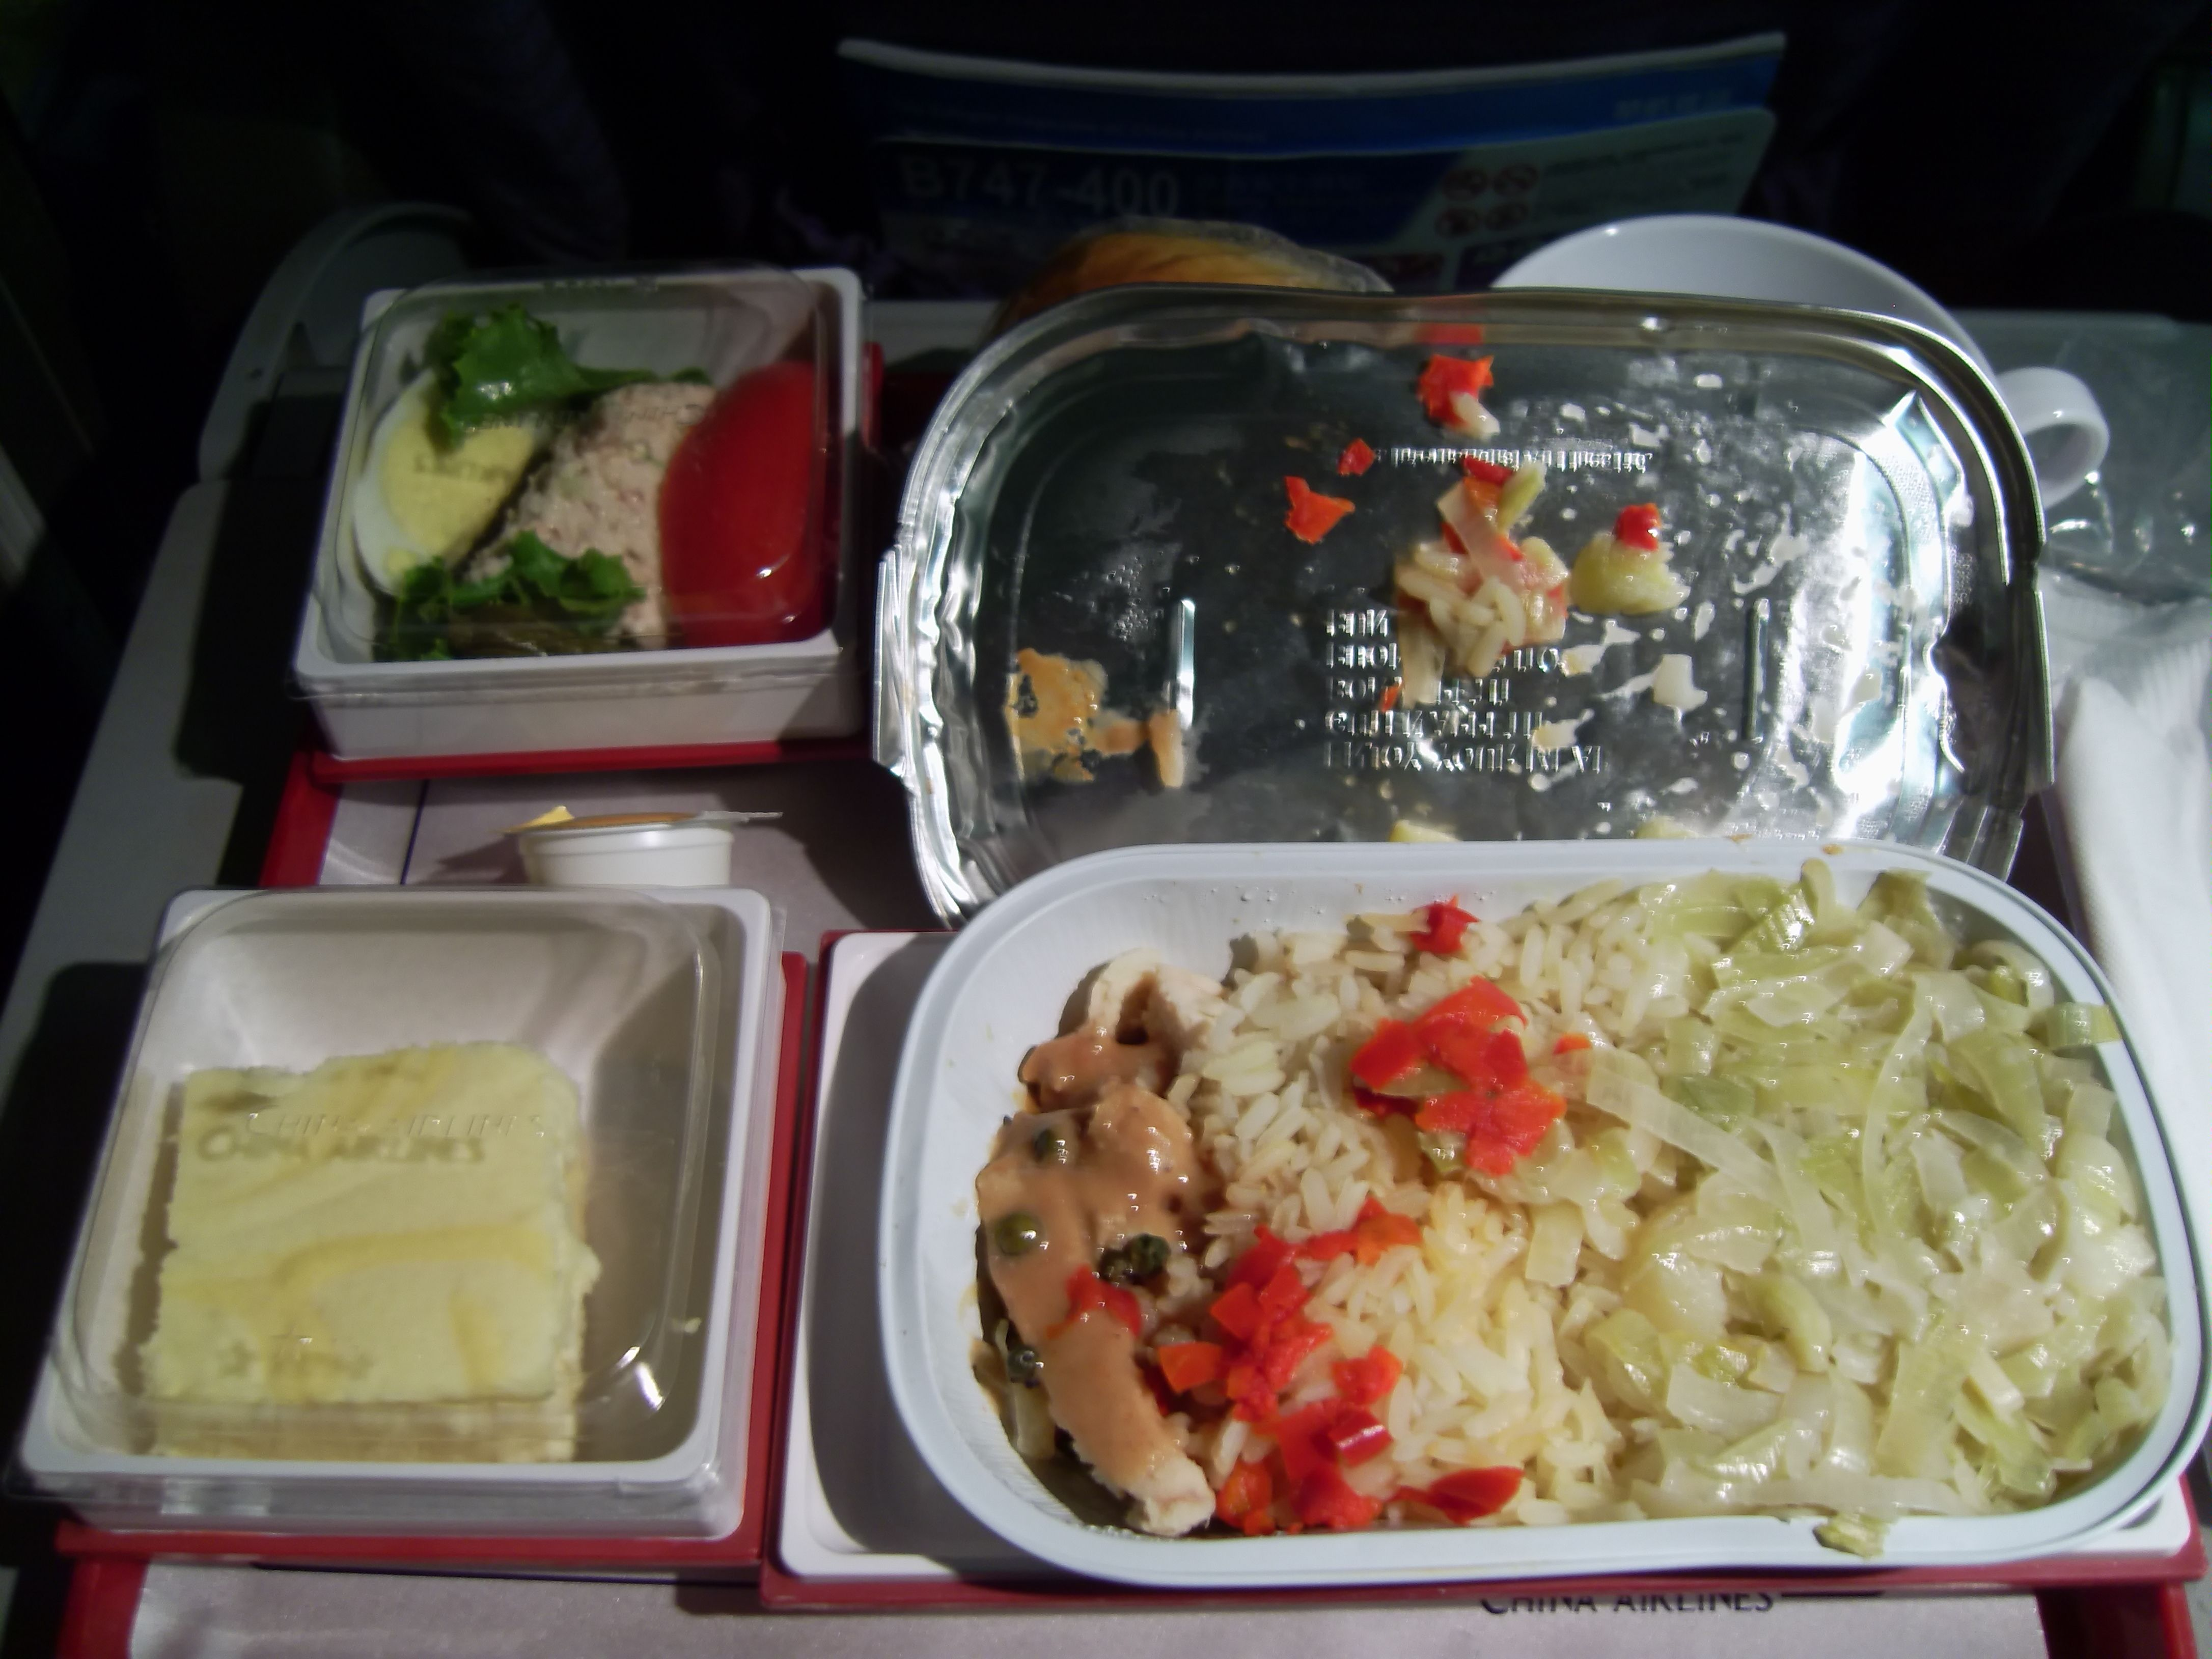 Economy class meal on China Airlines. 機内食